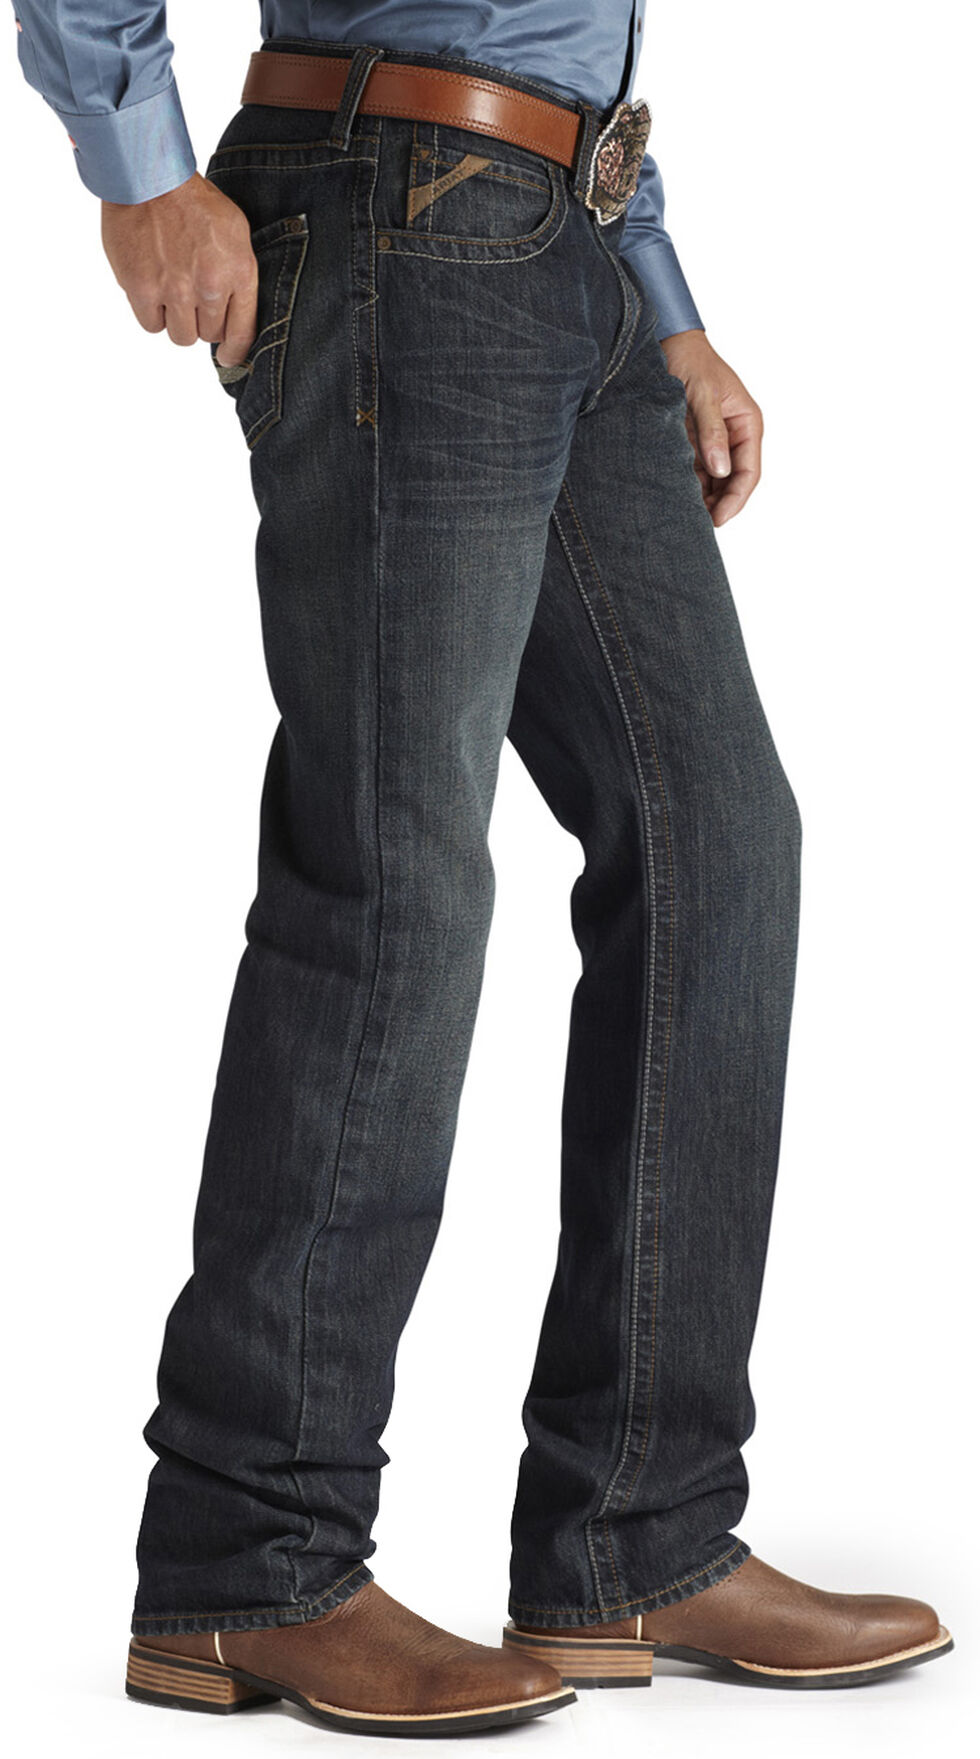 Ariat Denim Jeans - M2 Dusty Road Relaxed Fit, Denim, hi-res